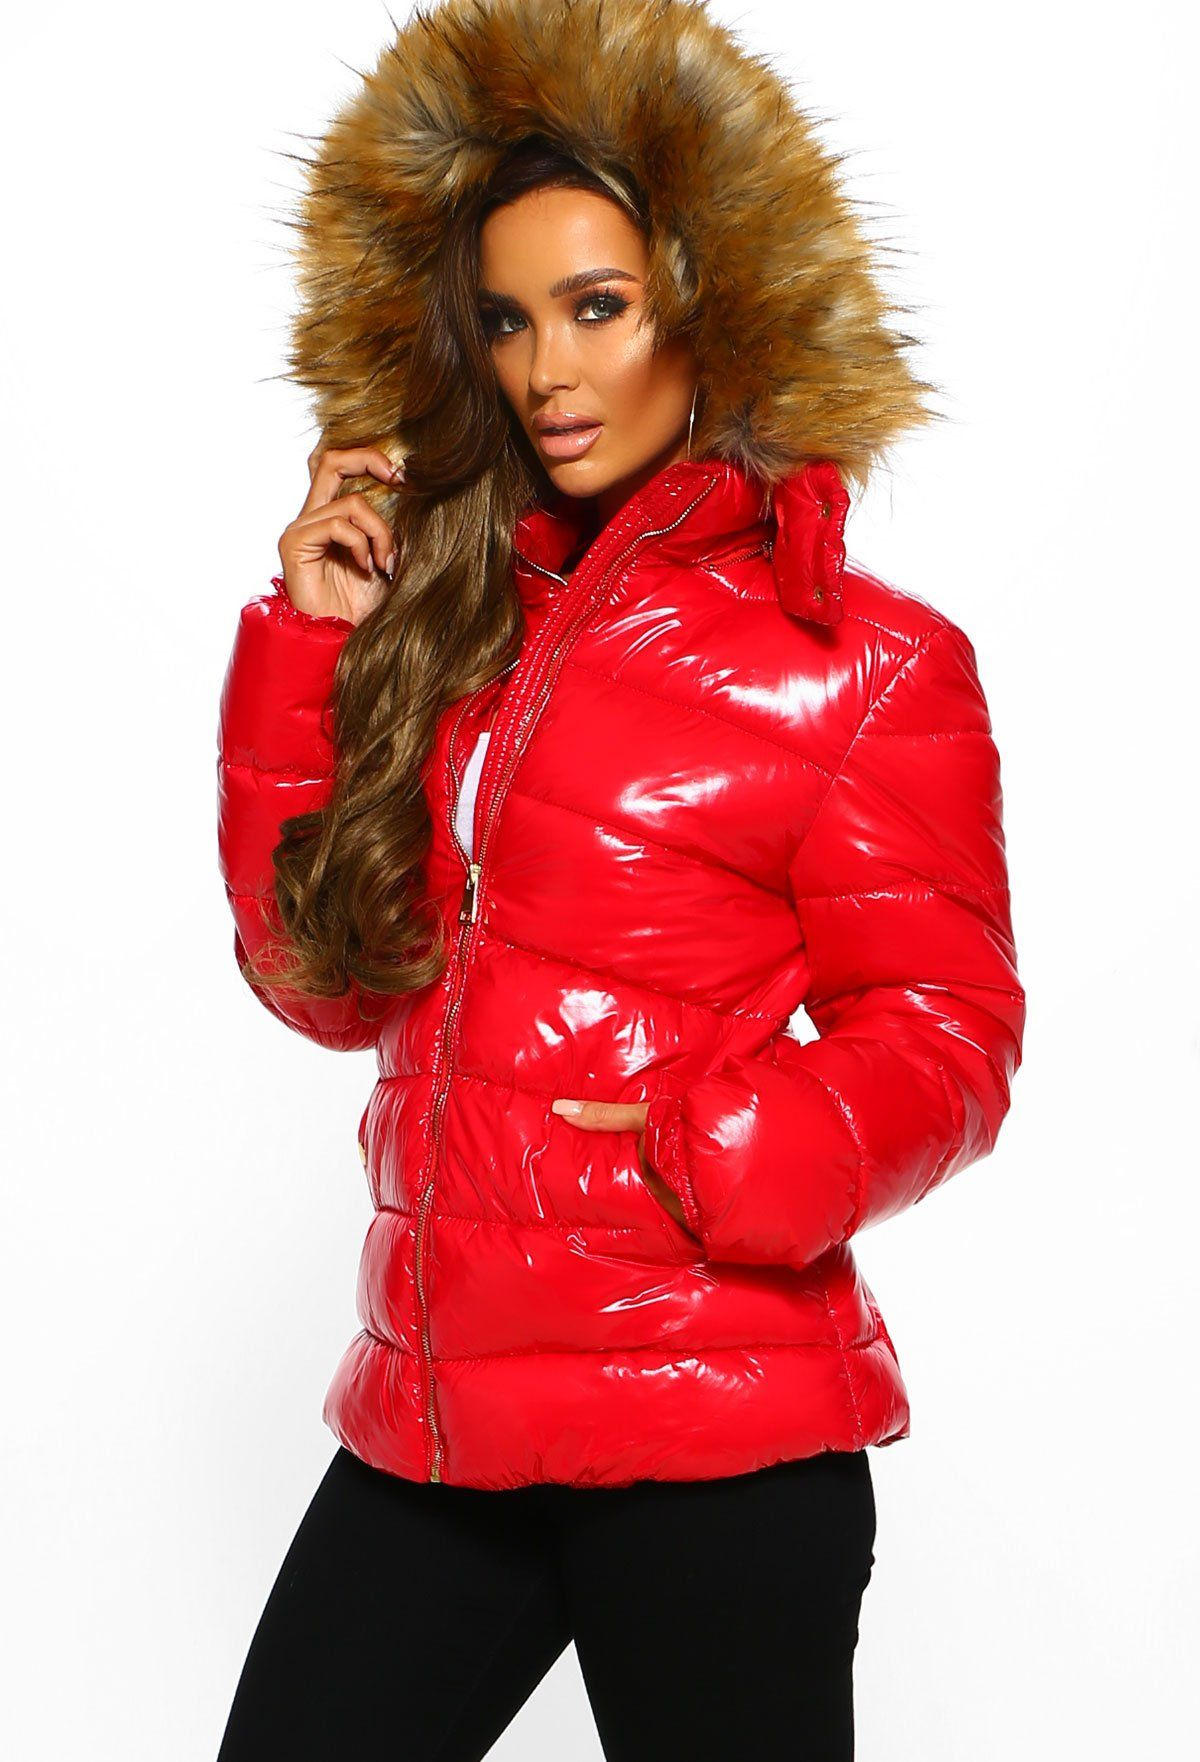 Are You Furreal Red Shiny Puffer Jacket With Faux Fur Hood Red Puffer Jacket Faux Fur Hood Jackets [ 1762 x 1200 Pixel ]